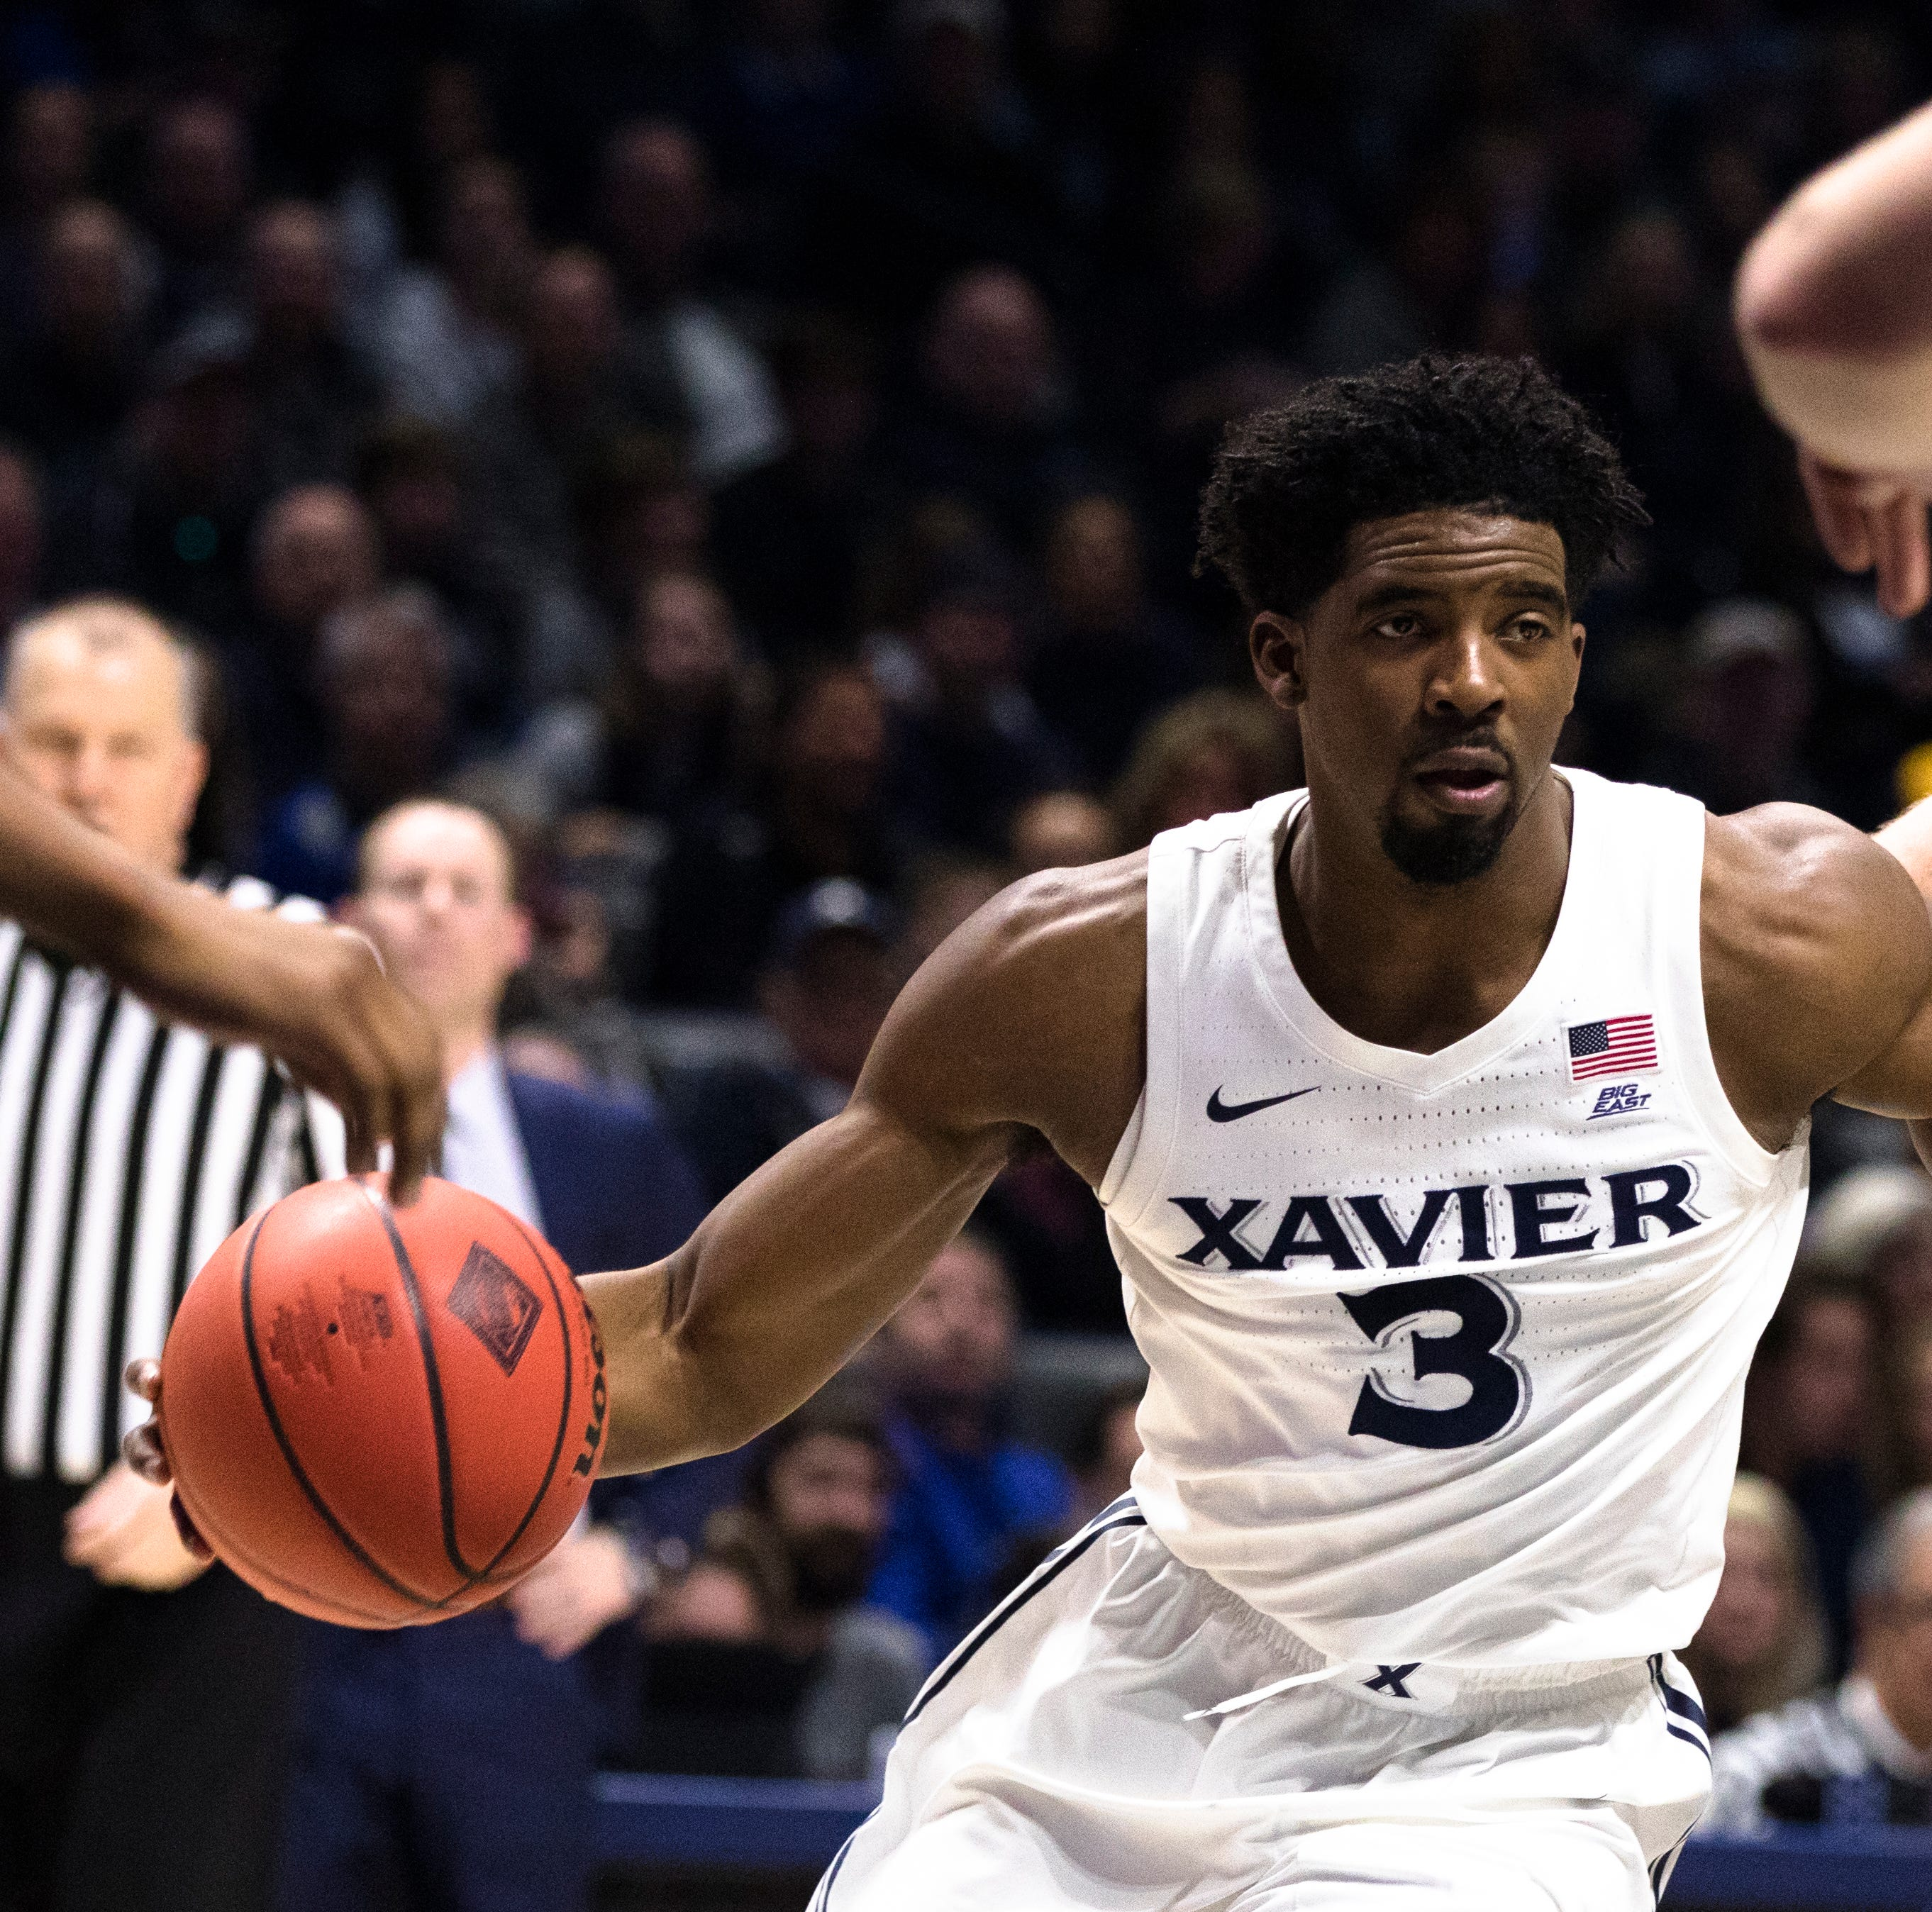 Here is Xavier University's 2019-2020 men's basketball non-conference schedule